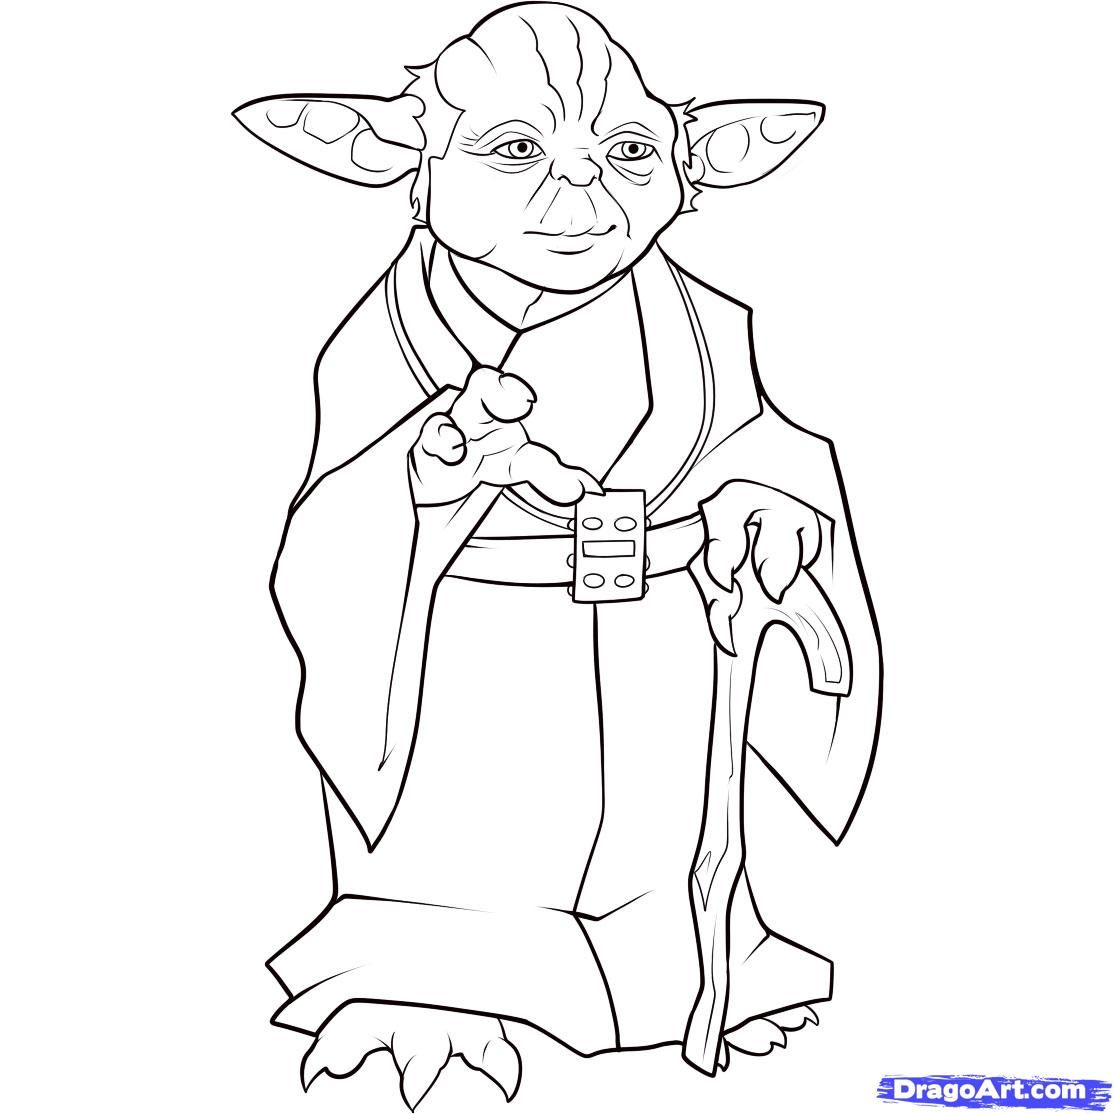 yoda coloring page - Yoda Coloring Pages